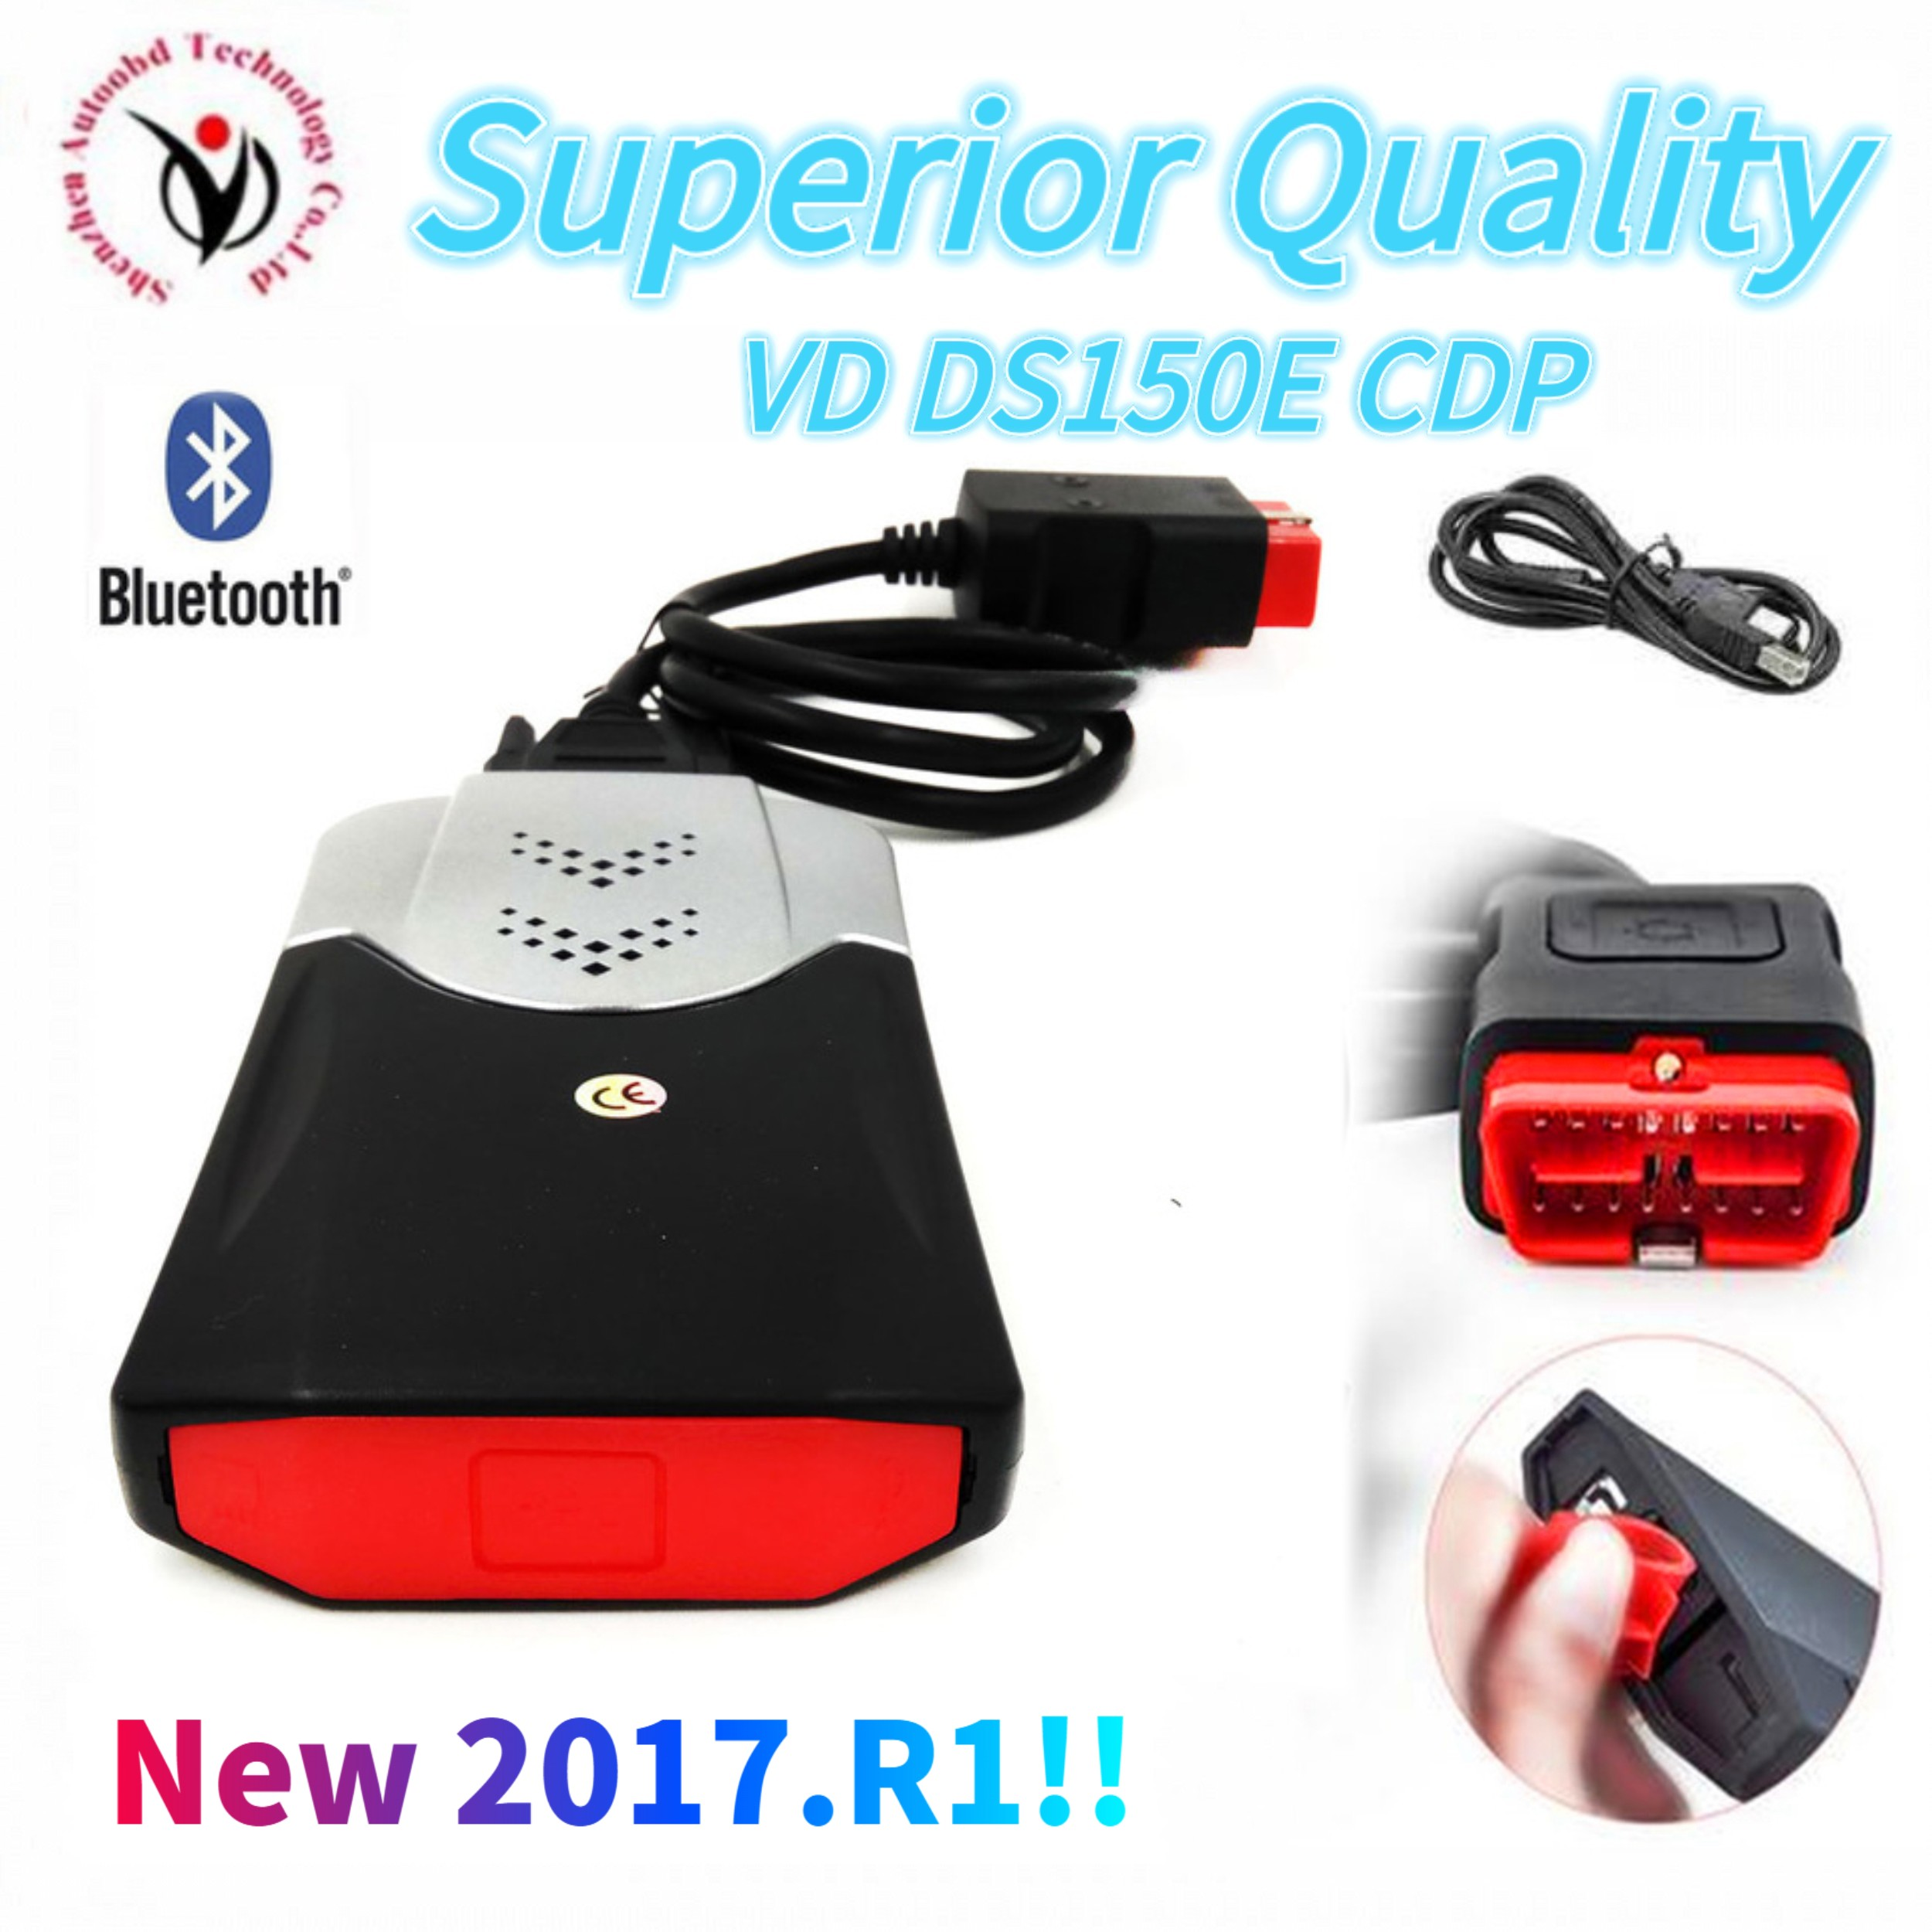 2020 Newest 2016 R0 with keygen for delphis vd ds150e cdp bluetooth car truck OBD2 diagnostic tool vd tcs cdp pro plus Scanner